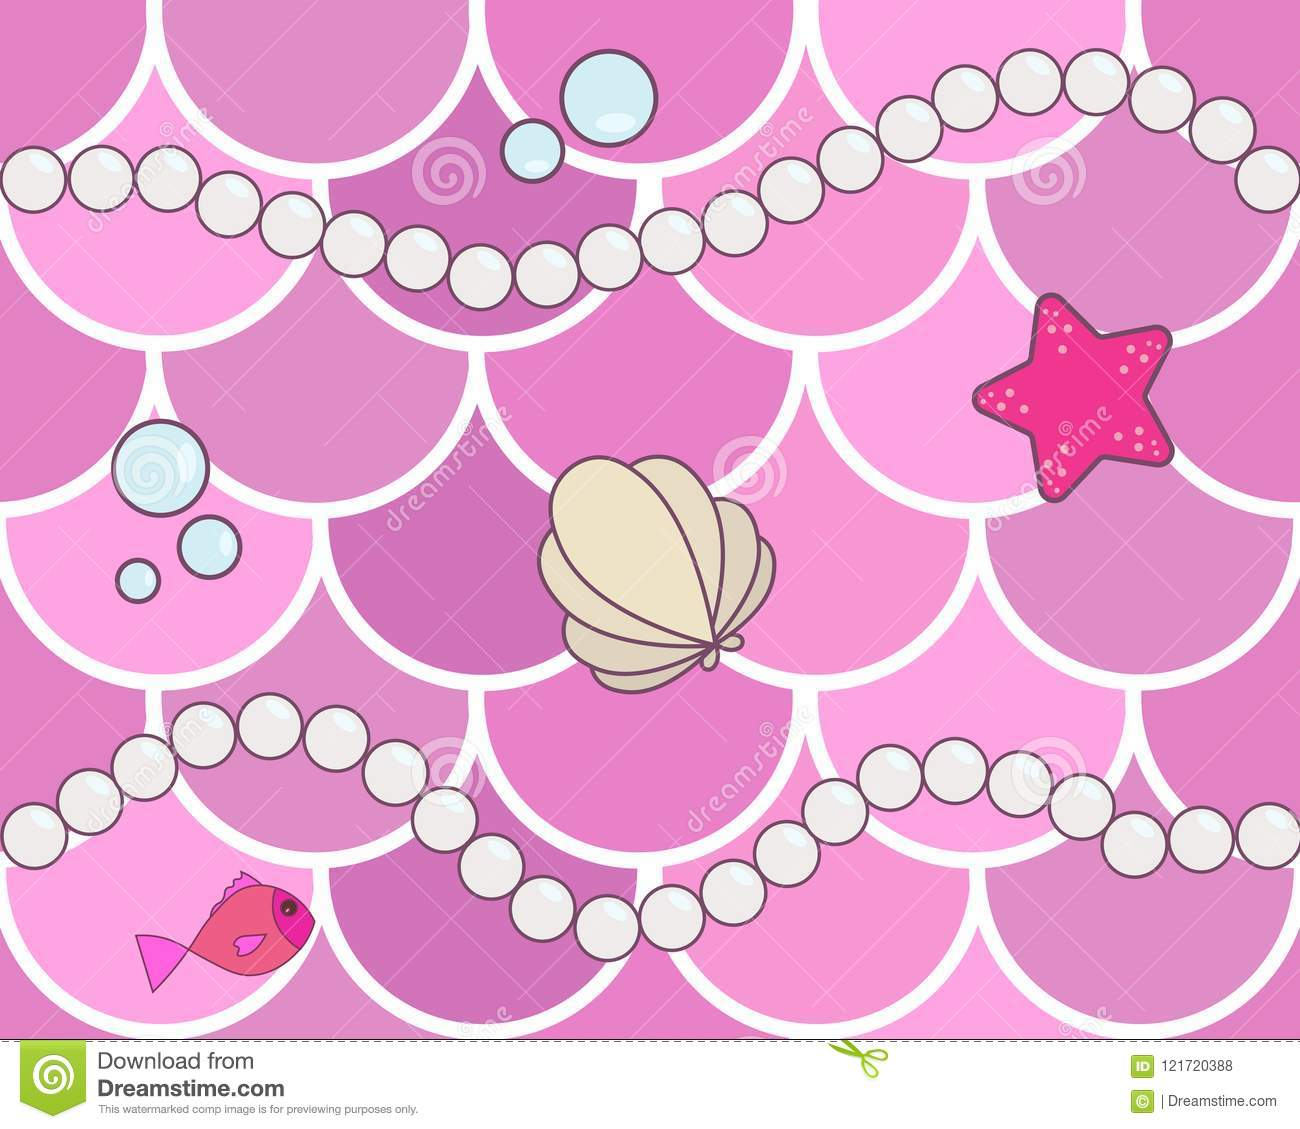 Mermaid scales seamless background pattern. Pink fish scales wit